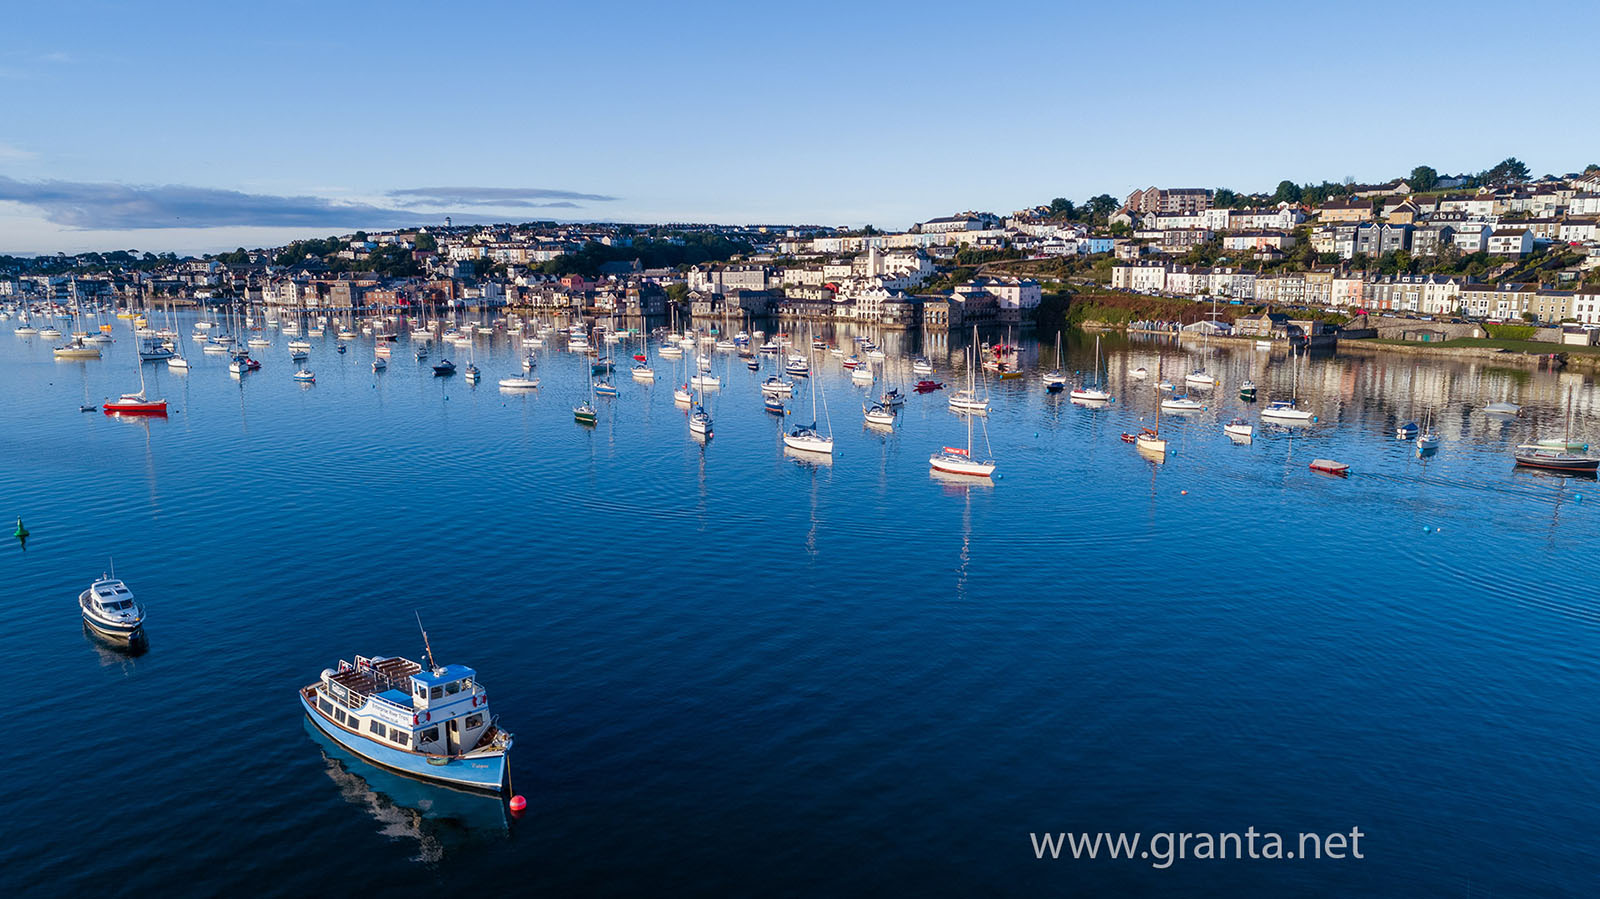 Boats moored up in Falmouth harbour at dawn, summer 2018